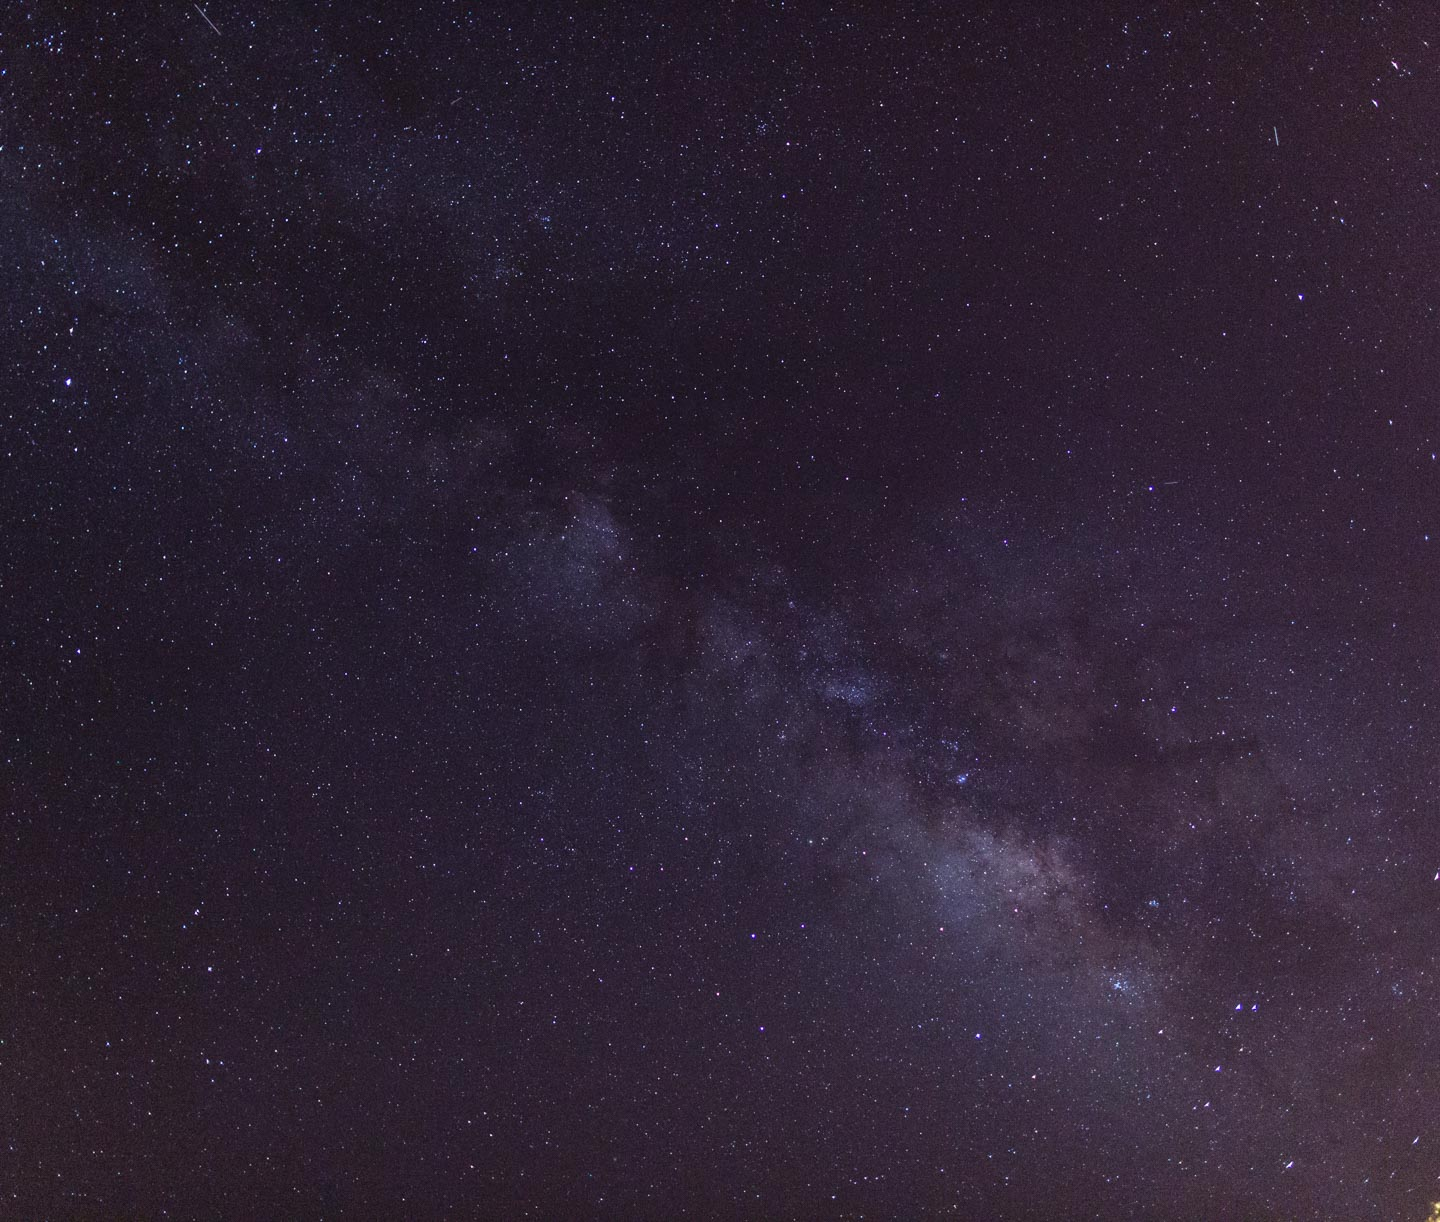 Milky Way Galaxy over Texas